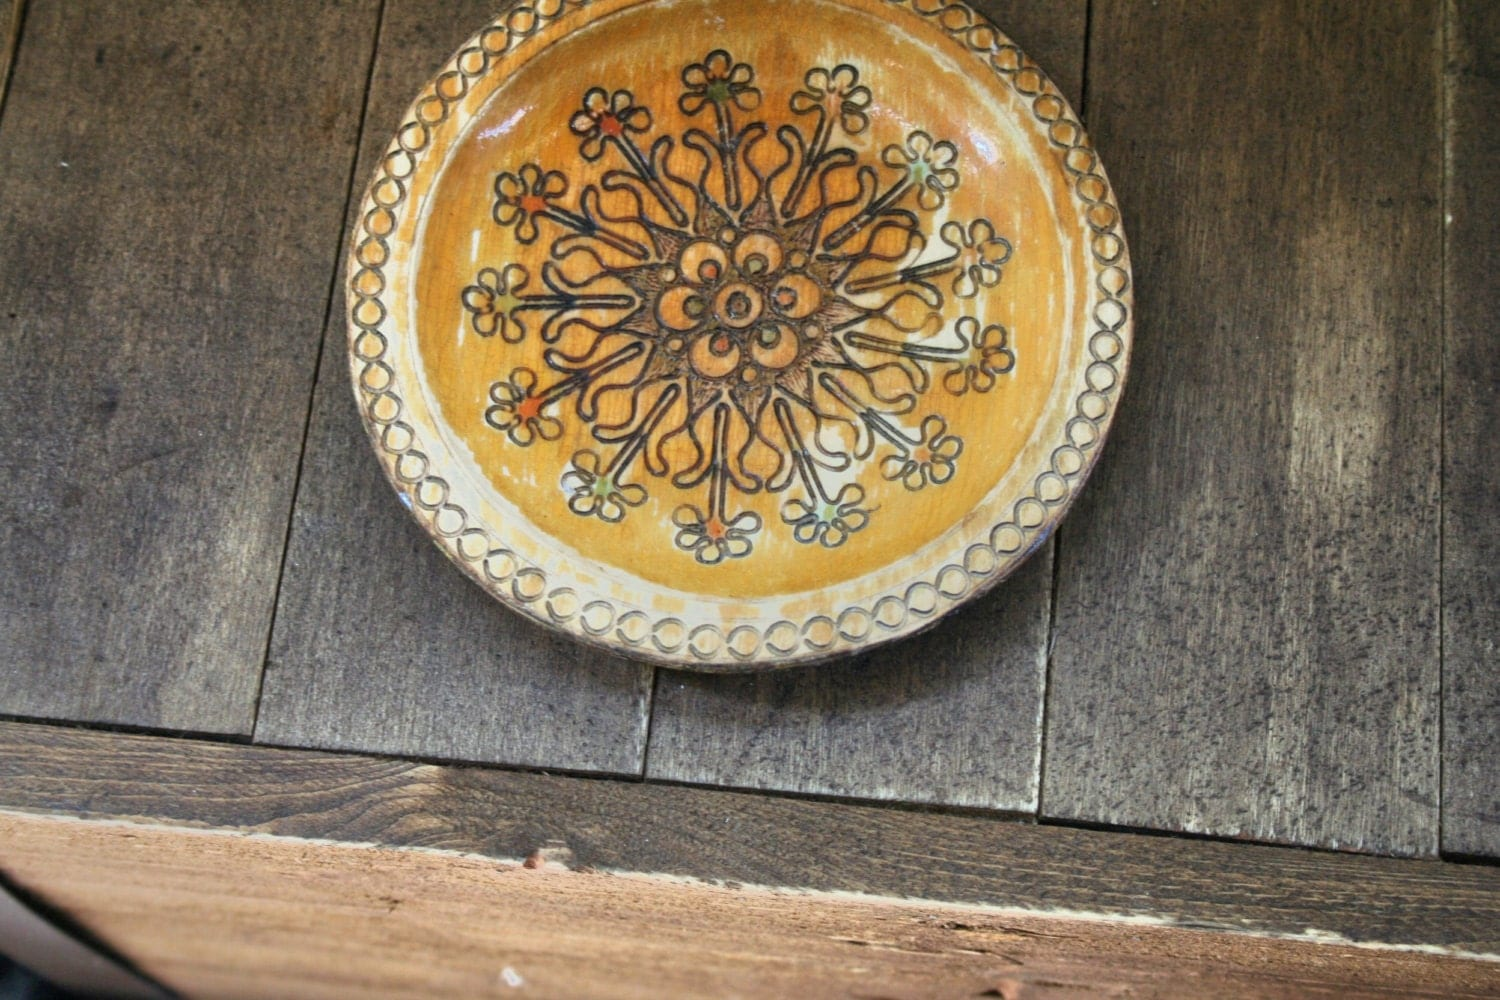 Small Decorative Wood Plate, Carved Wooden Plate, Flower Plate, Vintage Home Decor - MyOliviaVintage